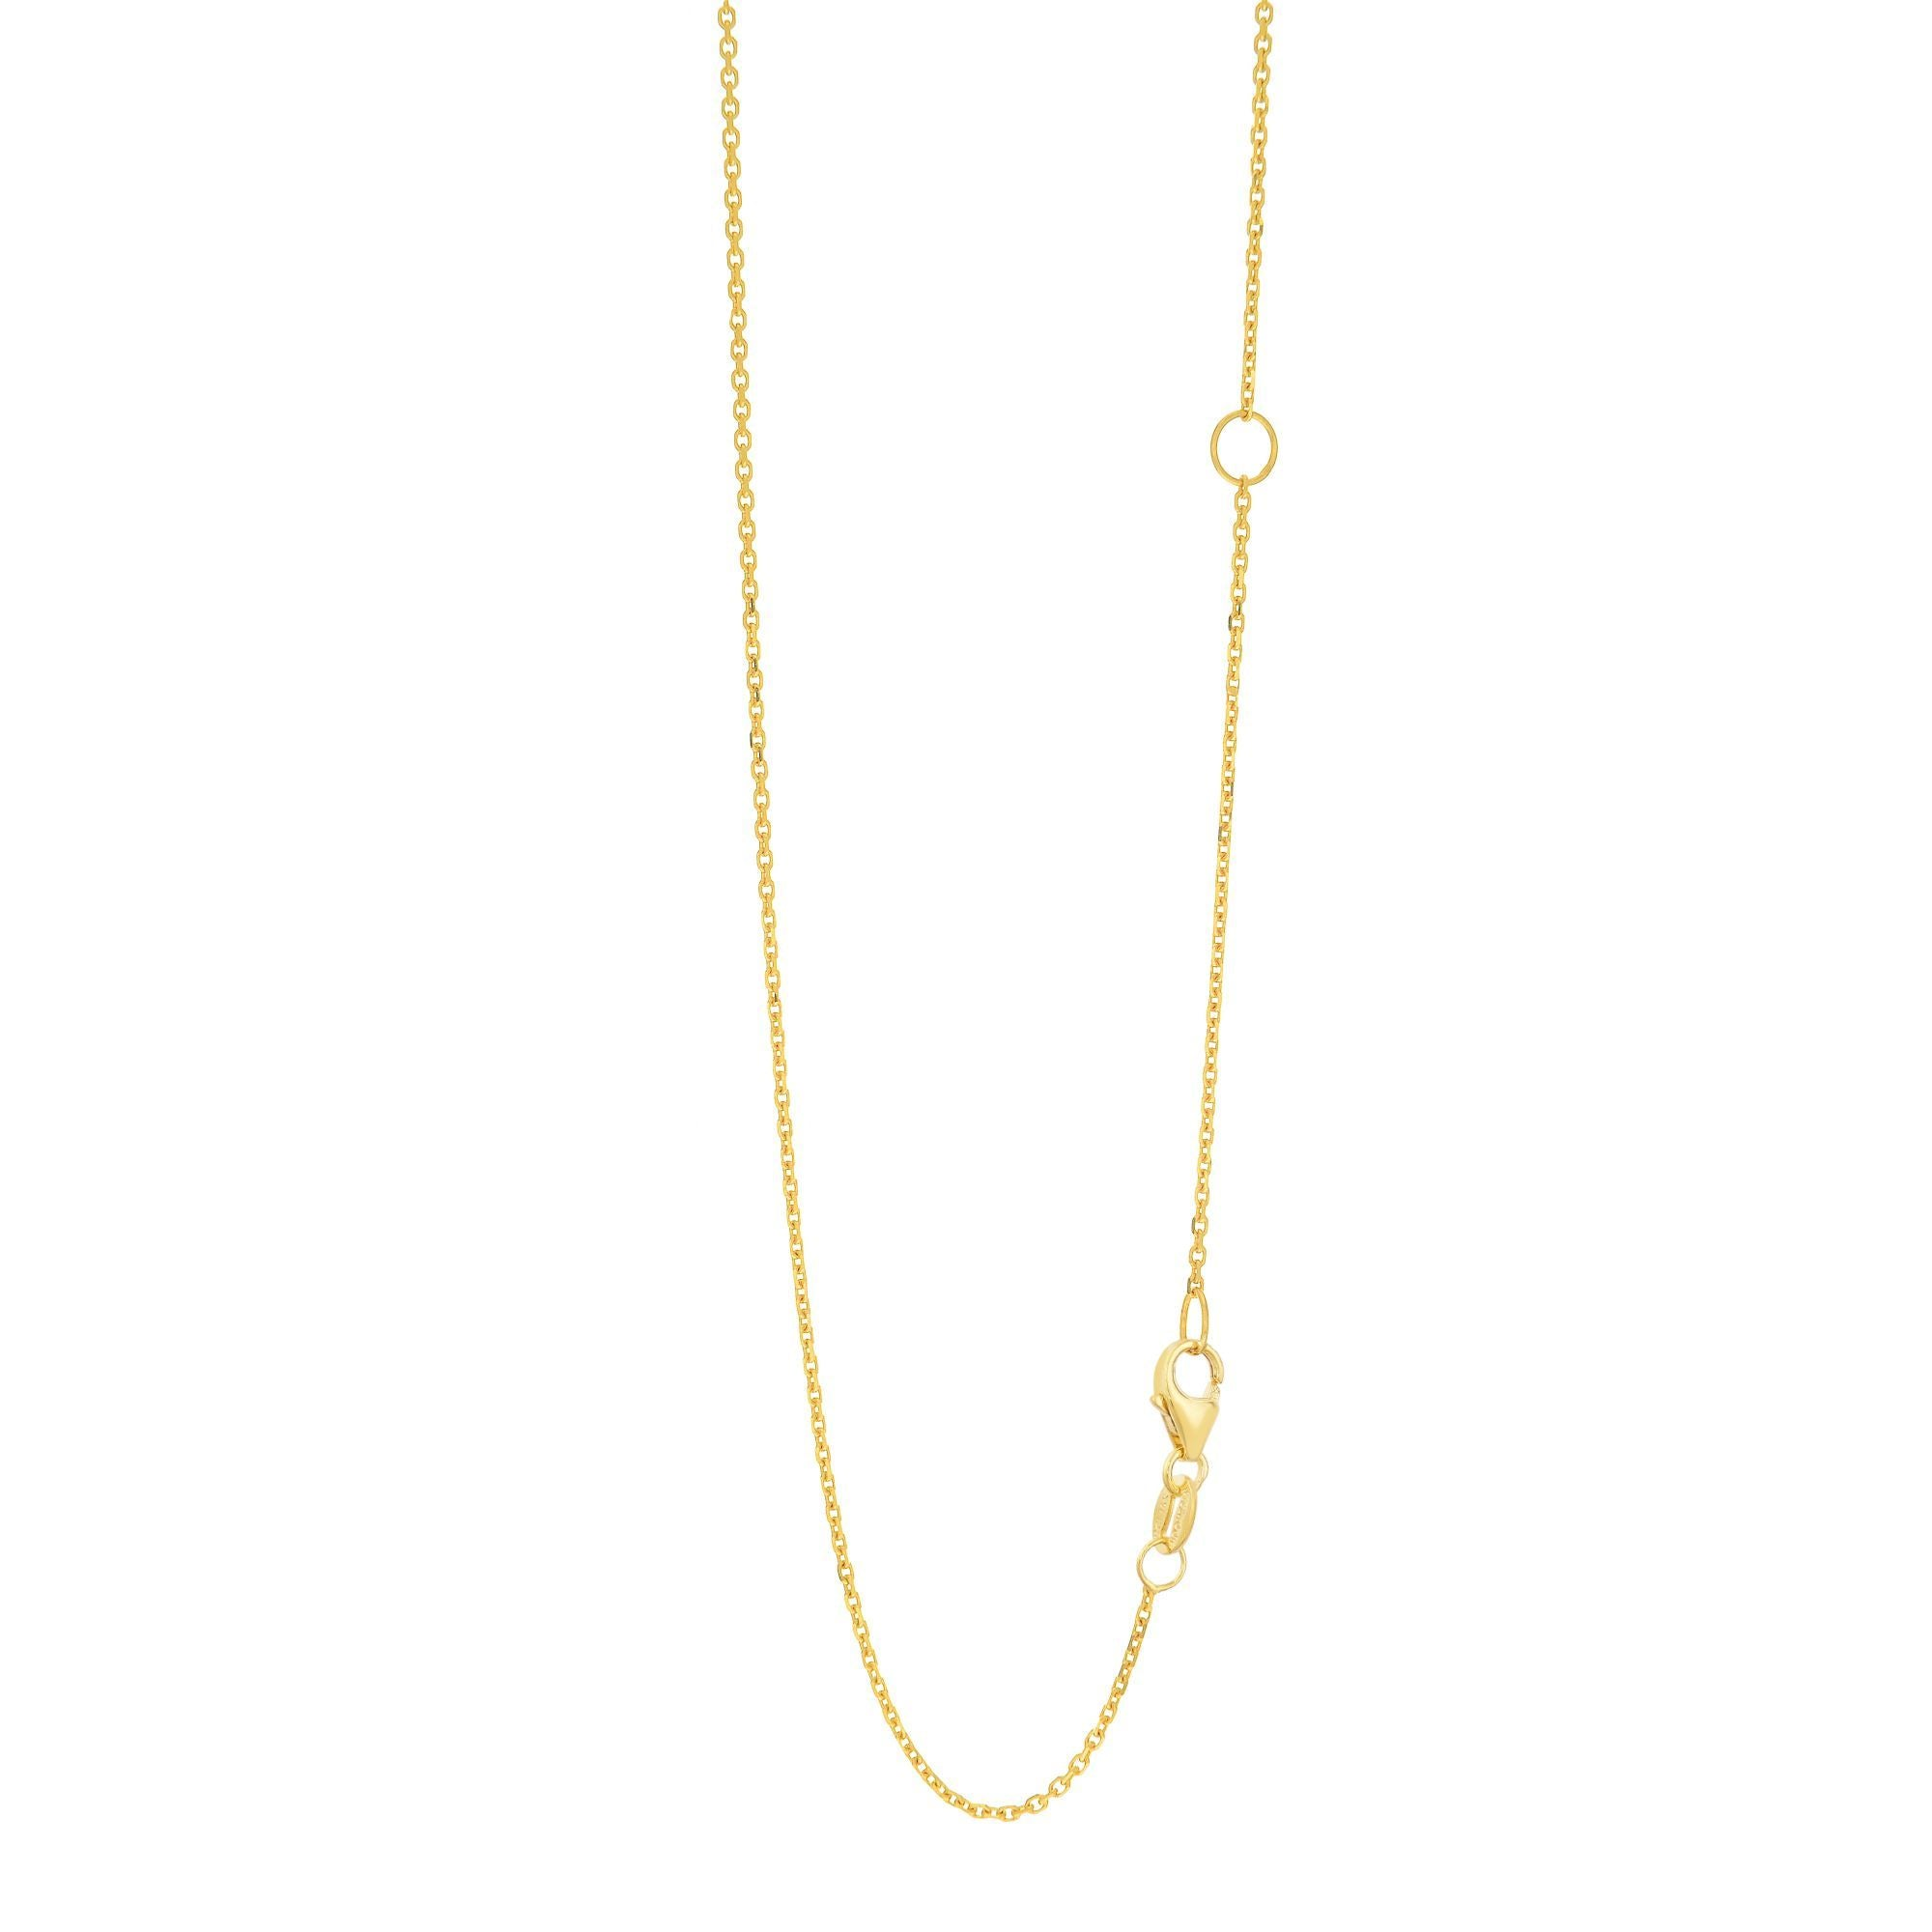 14K Yellow Gold Cable Link Chain